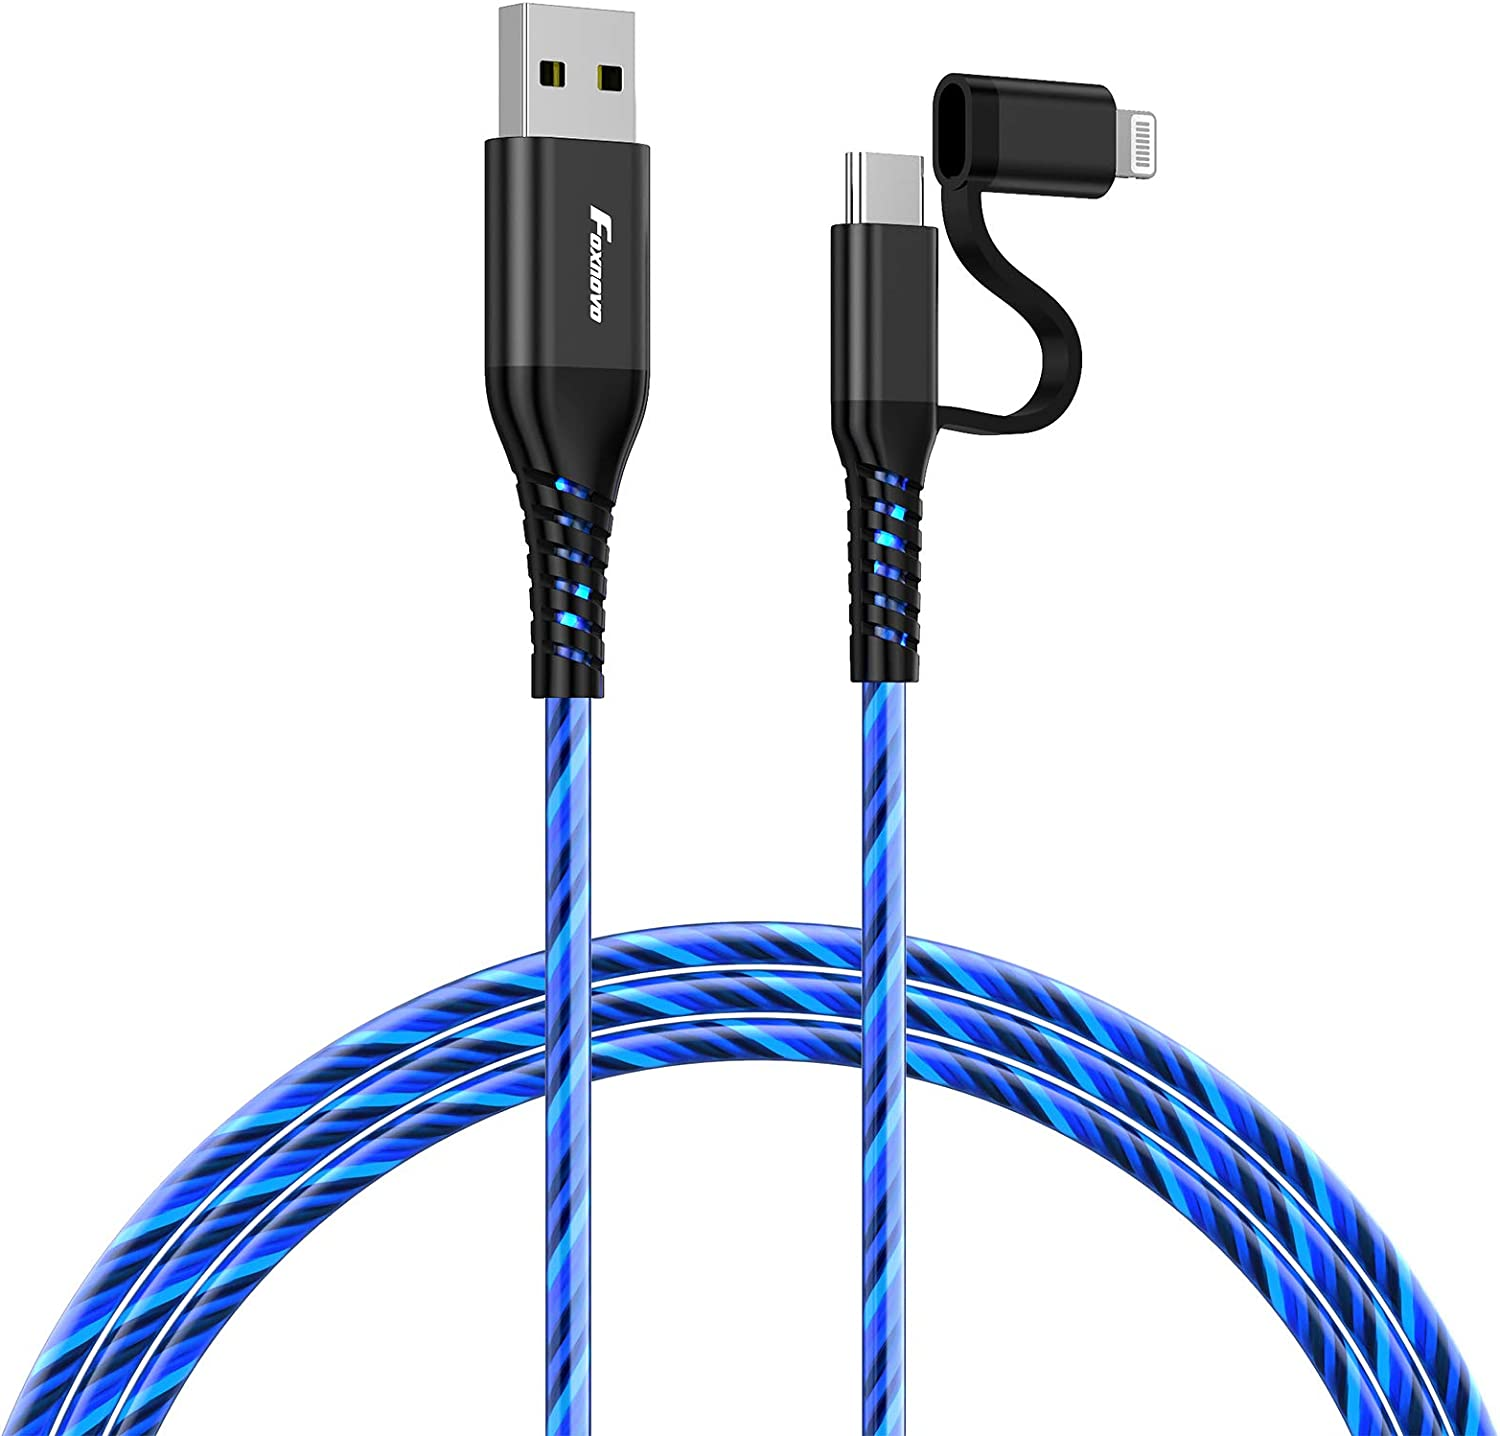 Foxnovo Apple Lightning Cable - iPhone Charging Cord USB A to USB C Lightning Cord MFI Certificated 3ft Charger Wire for iPhone 12 11 Pro 7 6 XS iPad iPod Mini